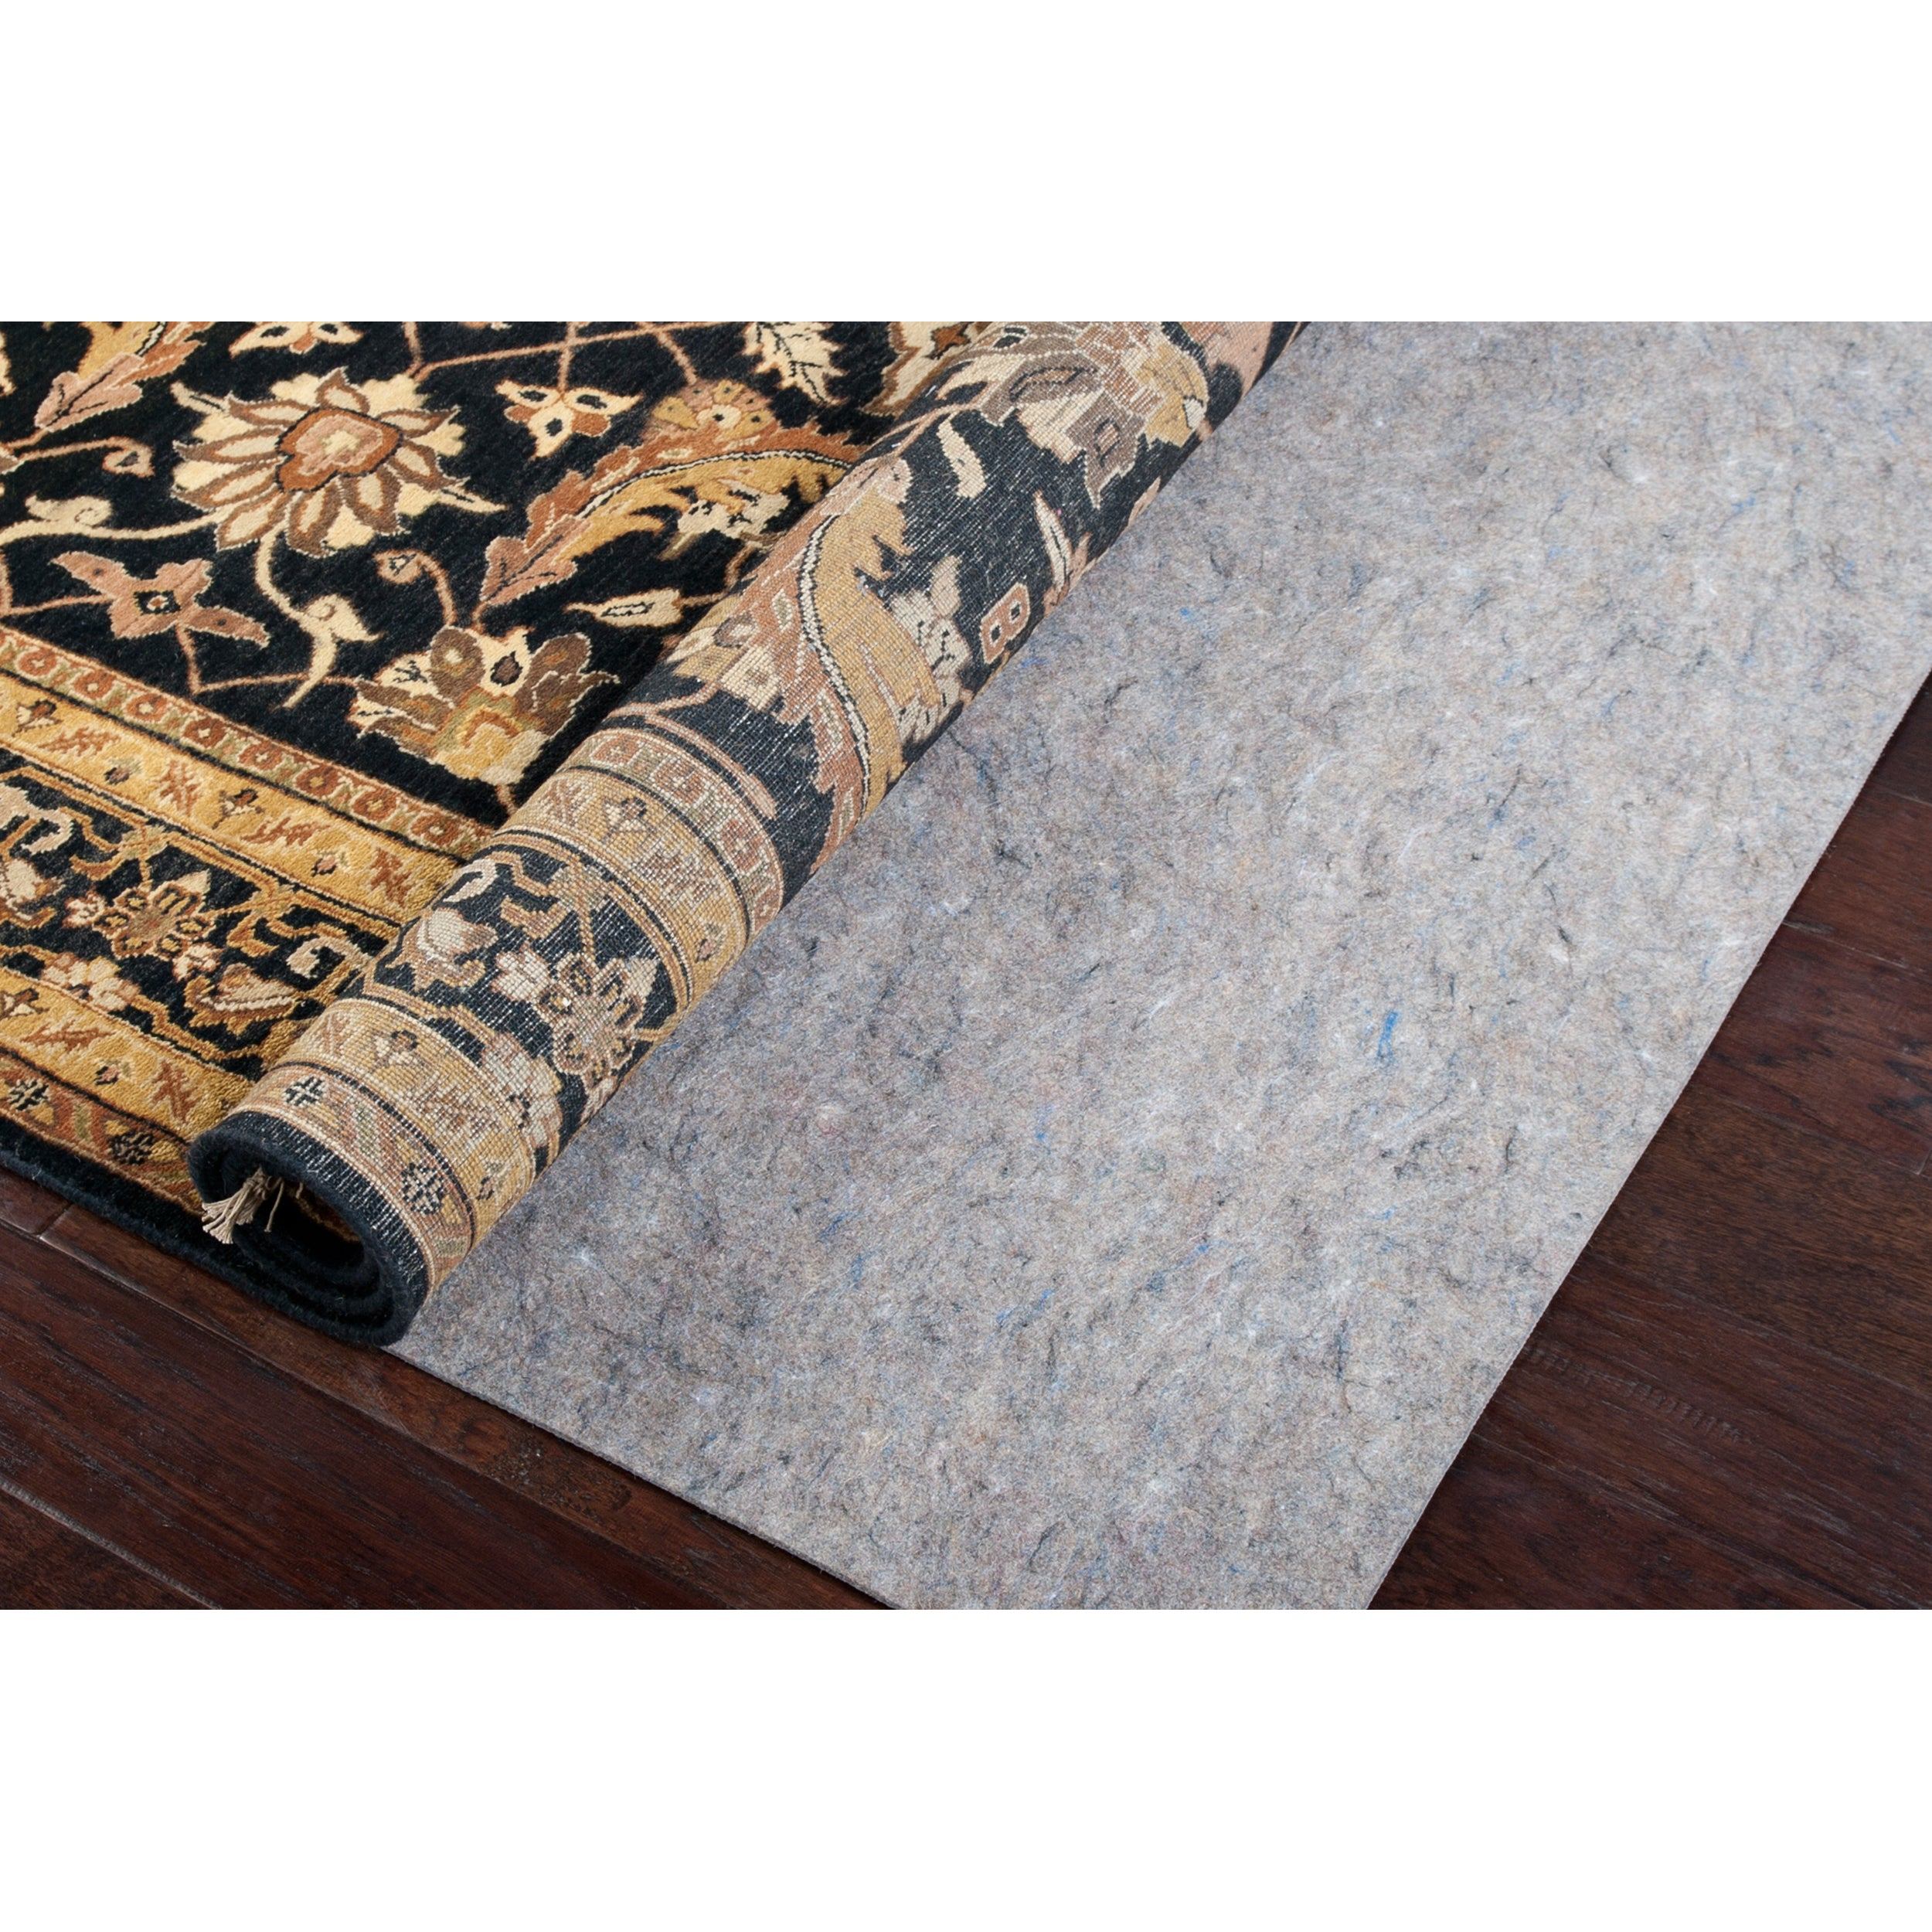 superior reversible felt rug pad (7'10 x 10'10) - free shipping